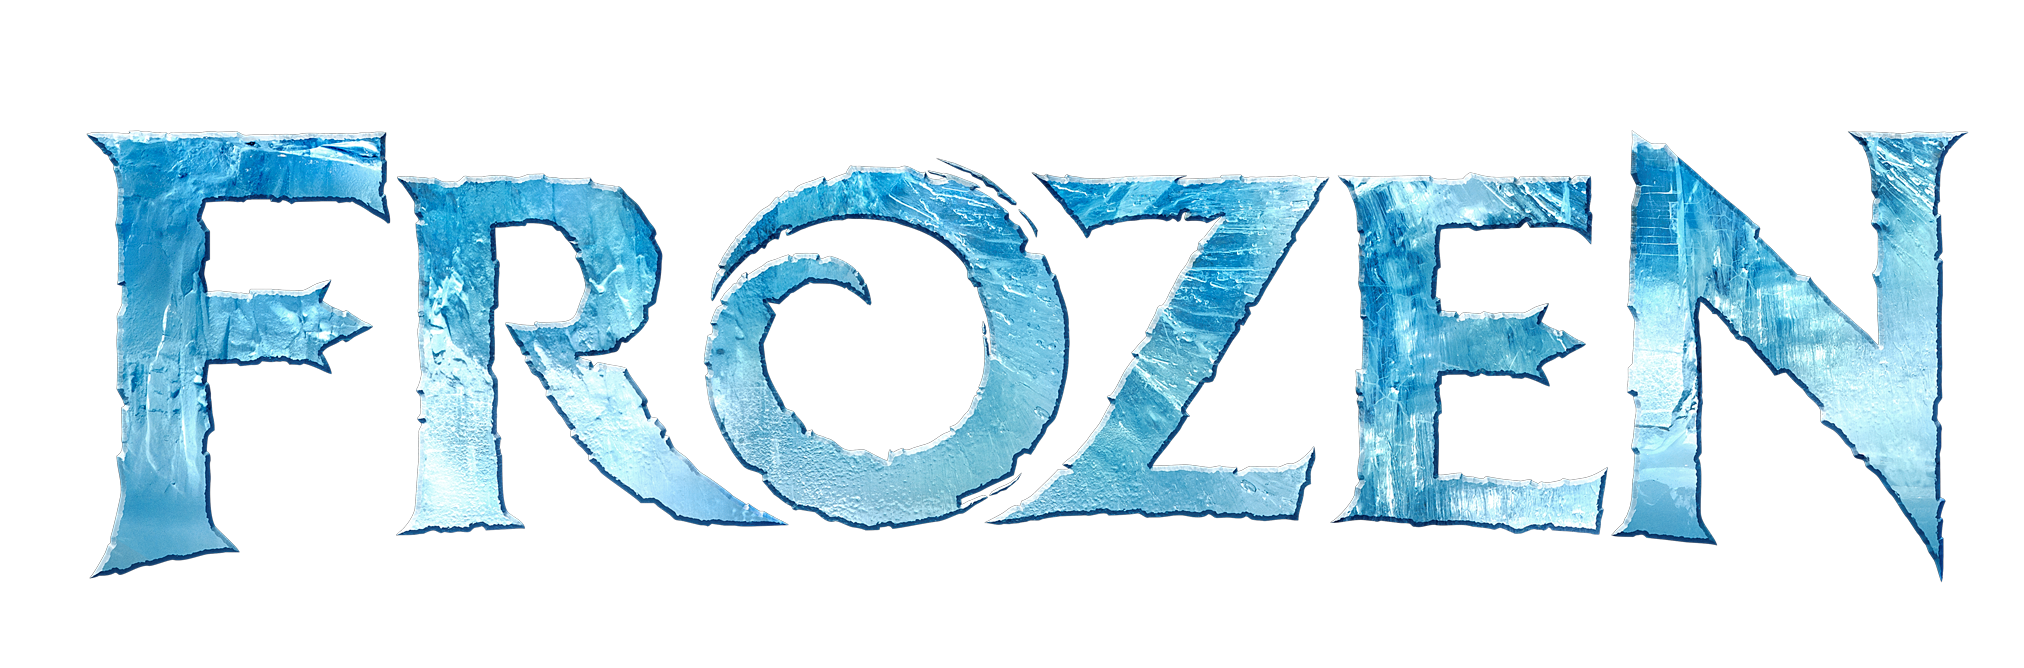 Frozen logo transparent